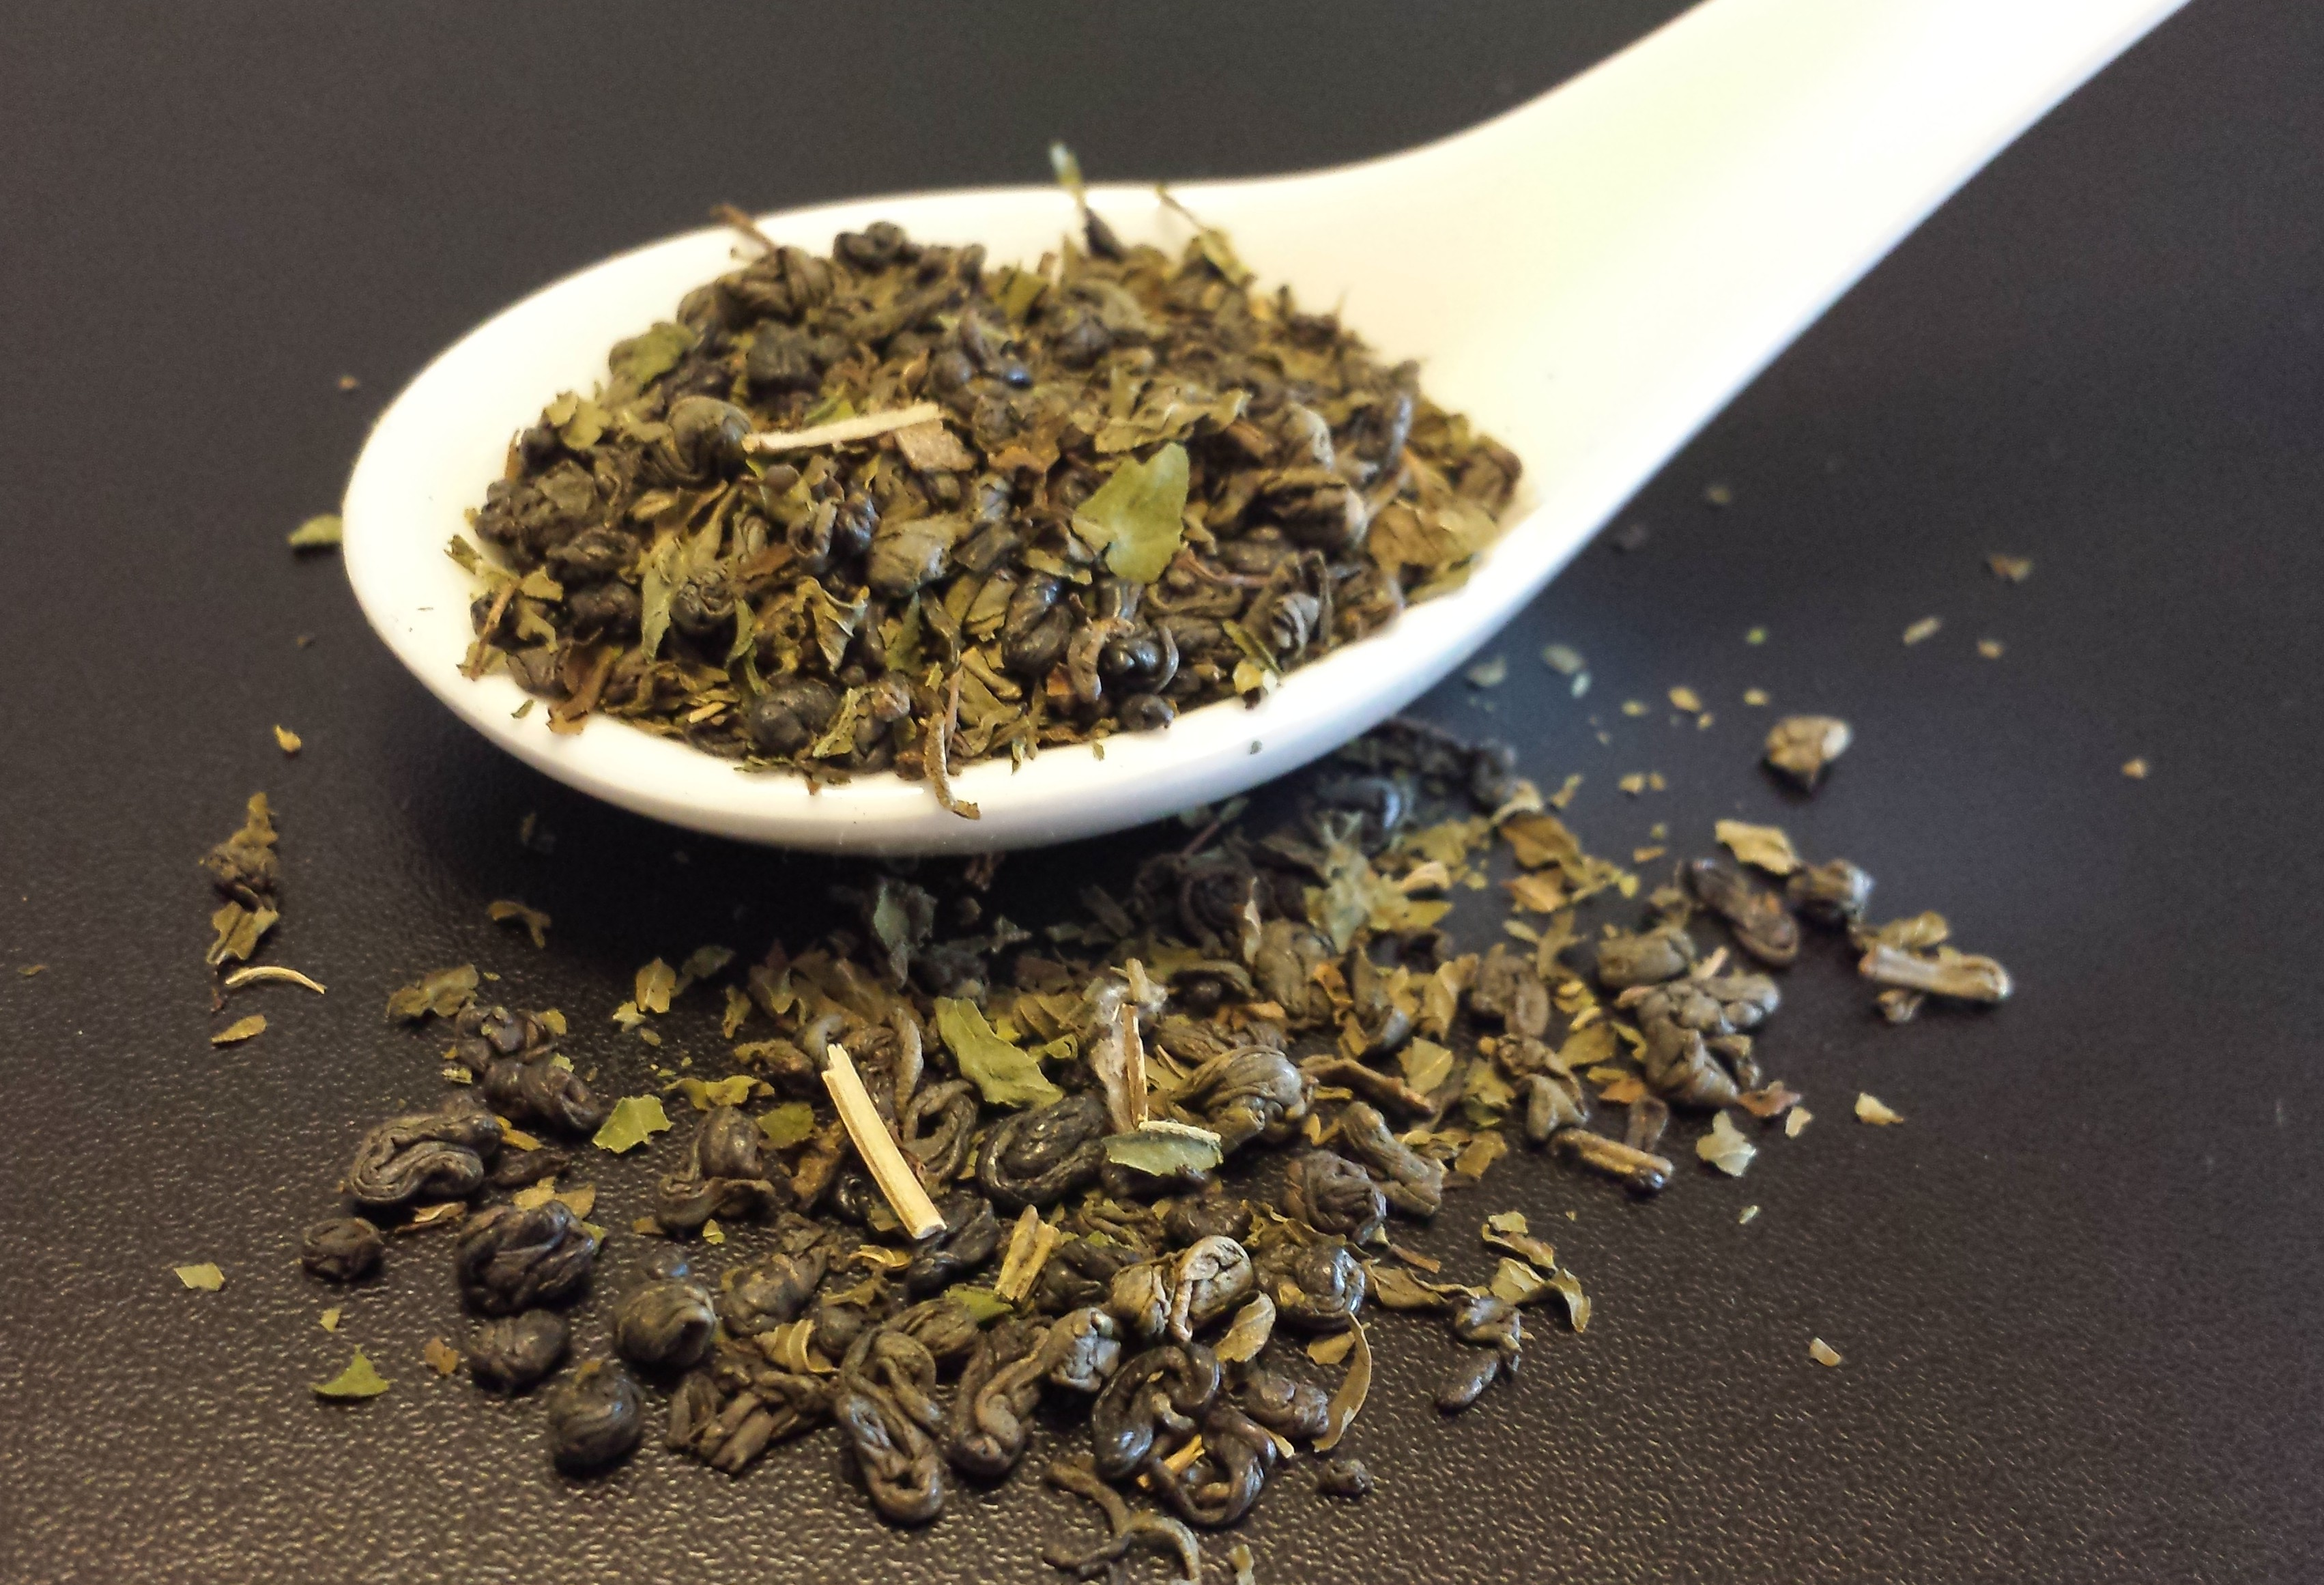 Moroccan Mint, green tea, peppermint, Attic blend tea, Gunpowder tea, Chinese tea